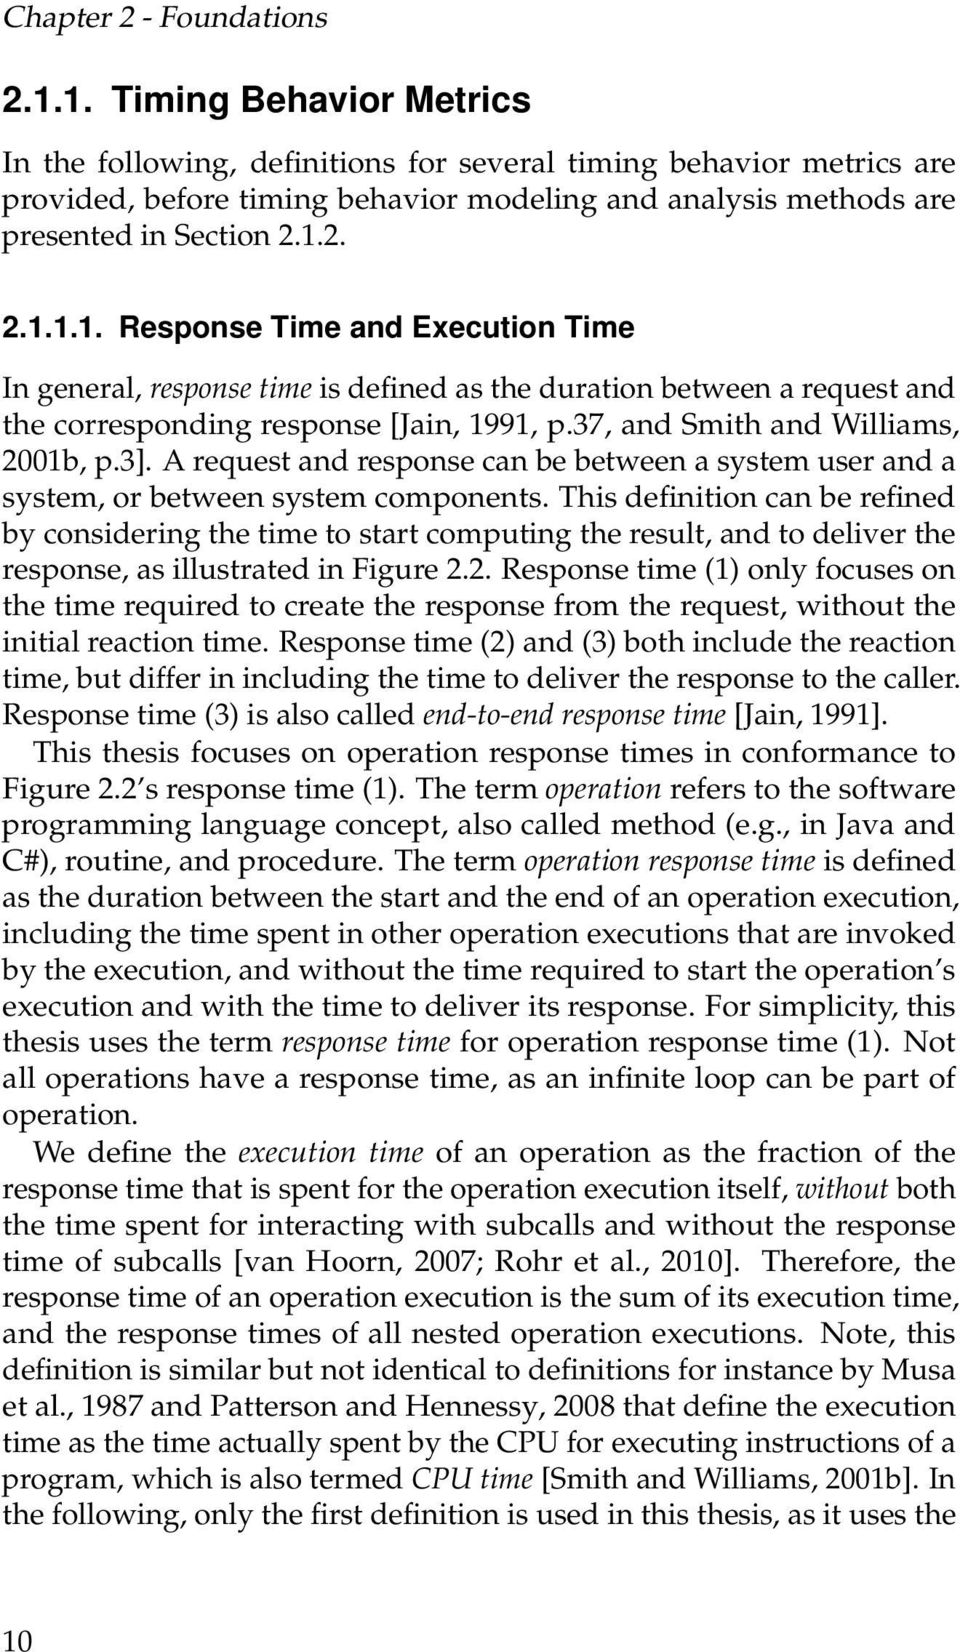 37, and Smith and Williams, 2001b, p.3]. A request and response can be between a system user and a system, or between system components.